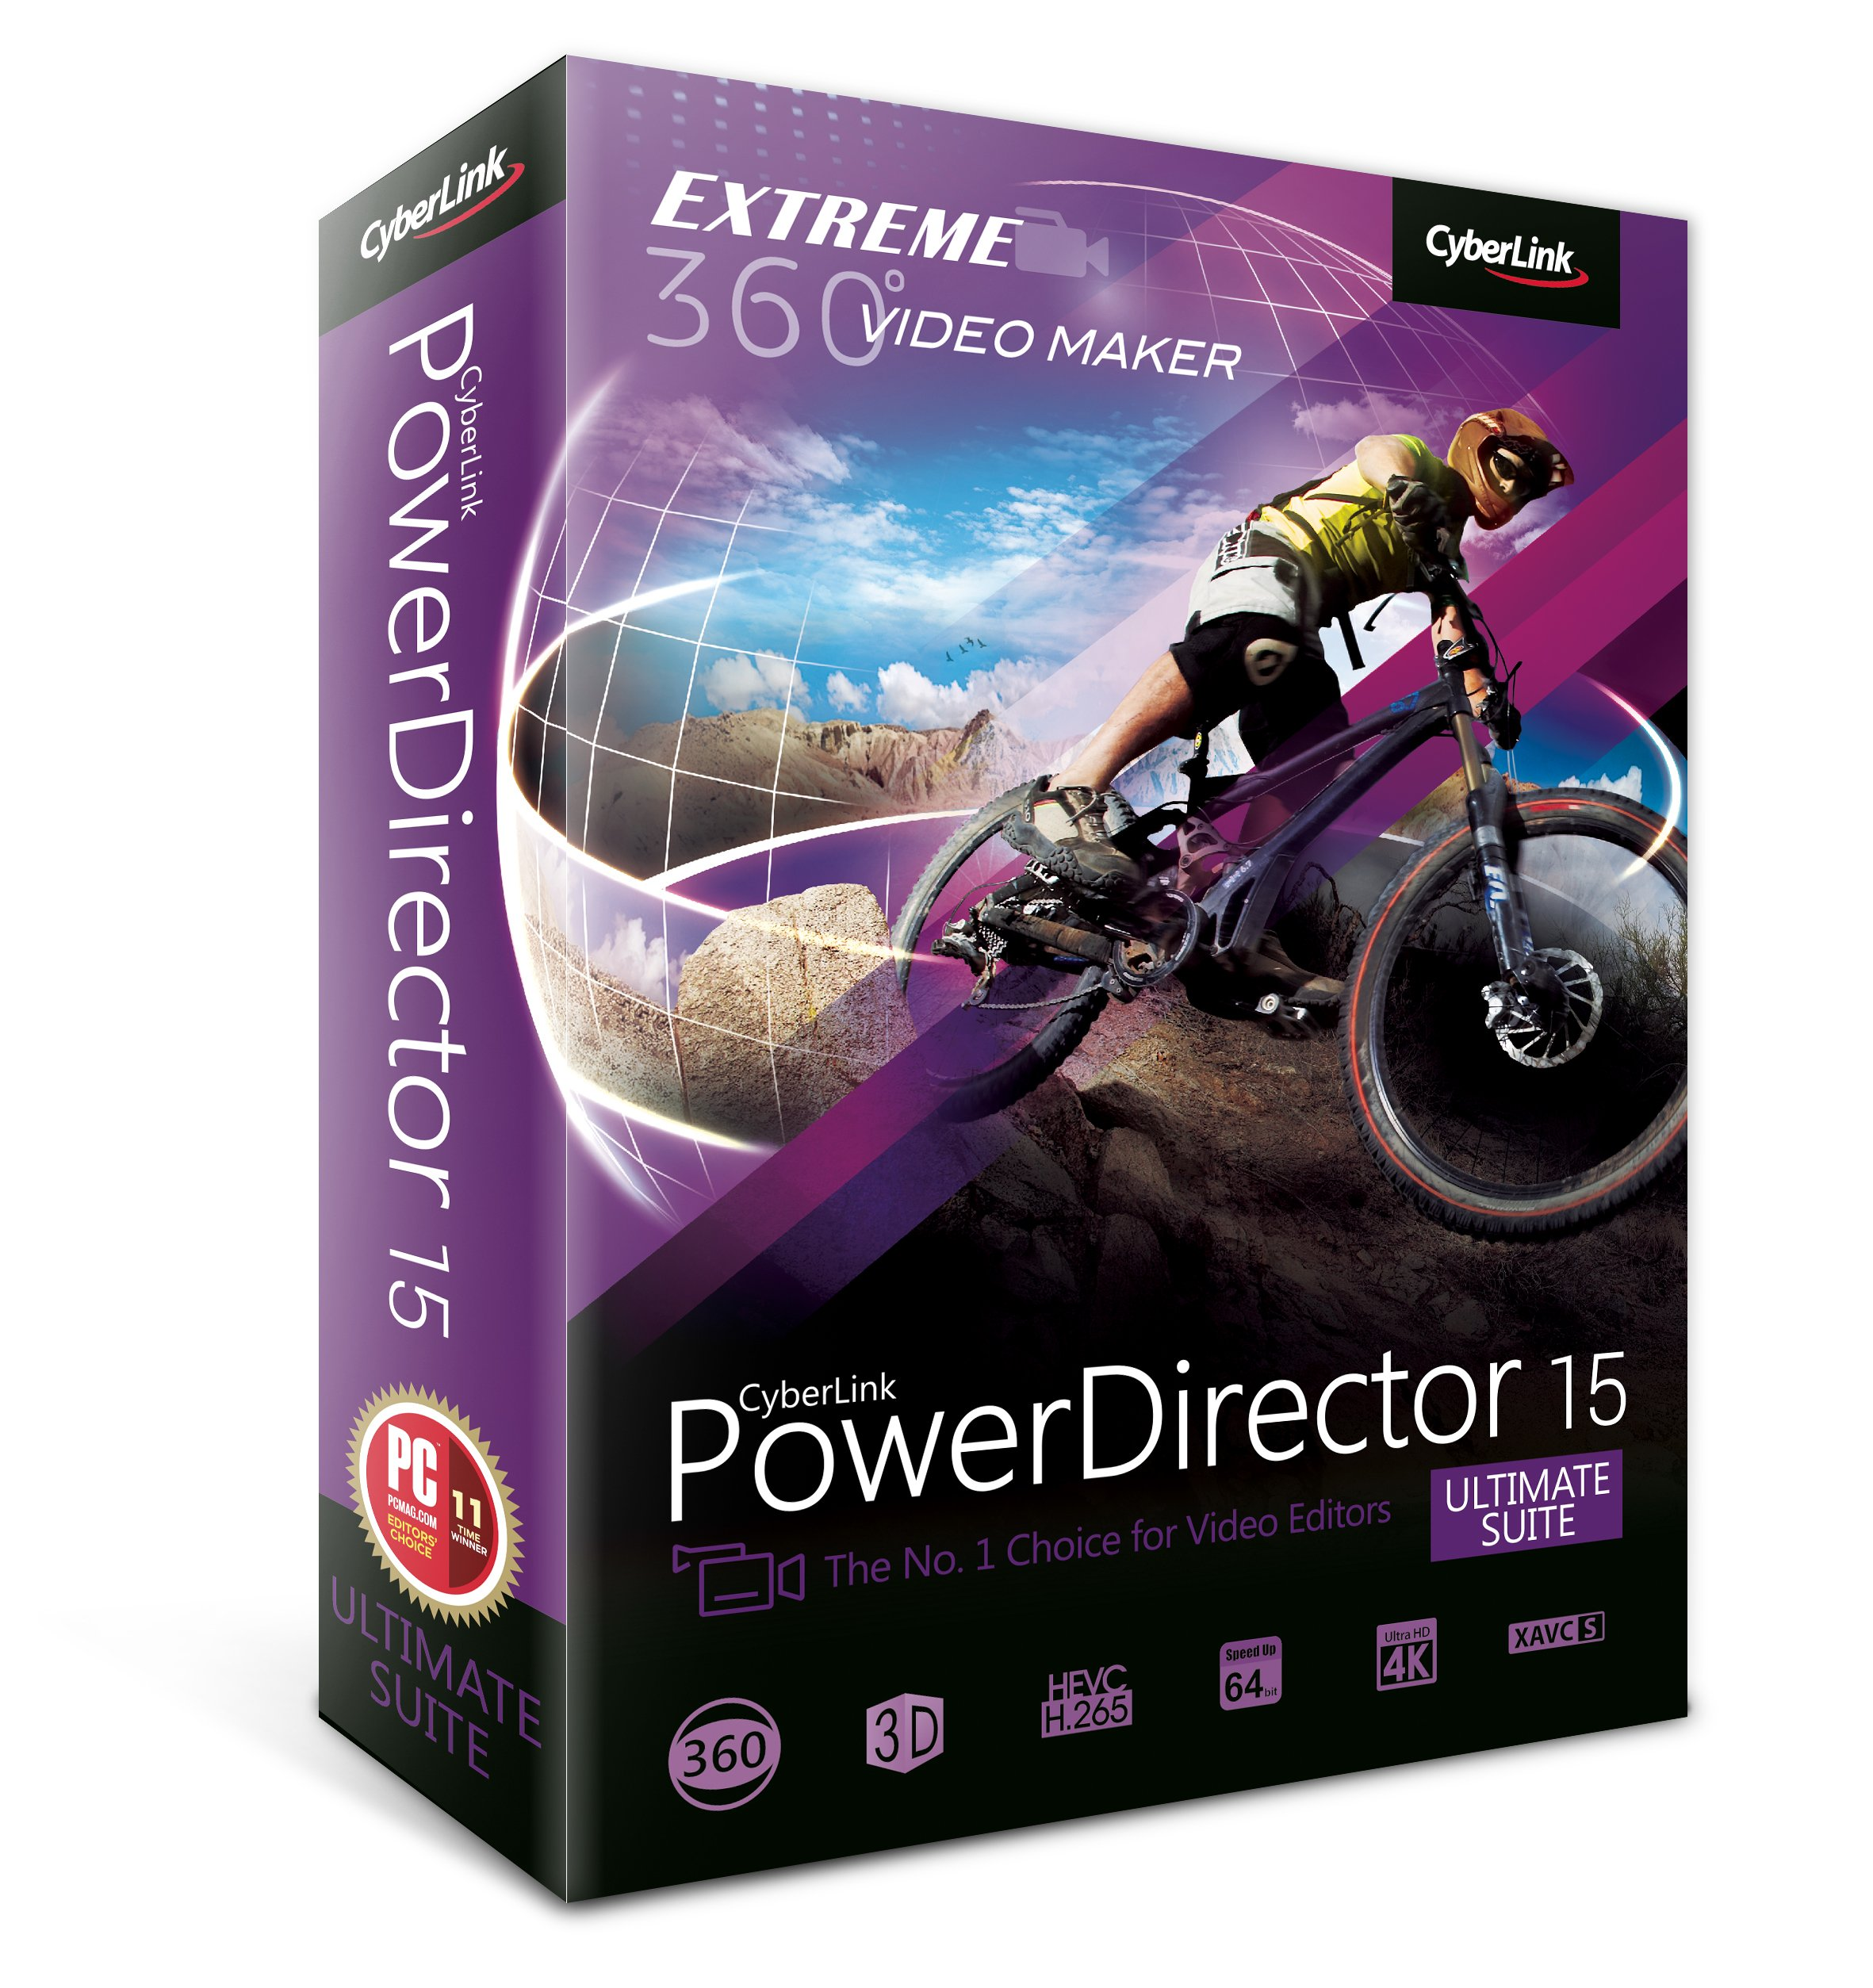 Cyberlink PowerDirector 15 Ultimate Suite by Cyberlink